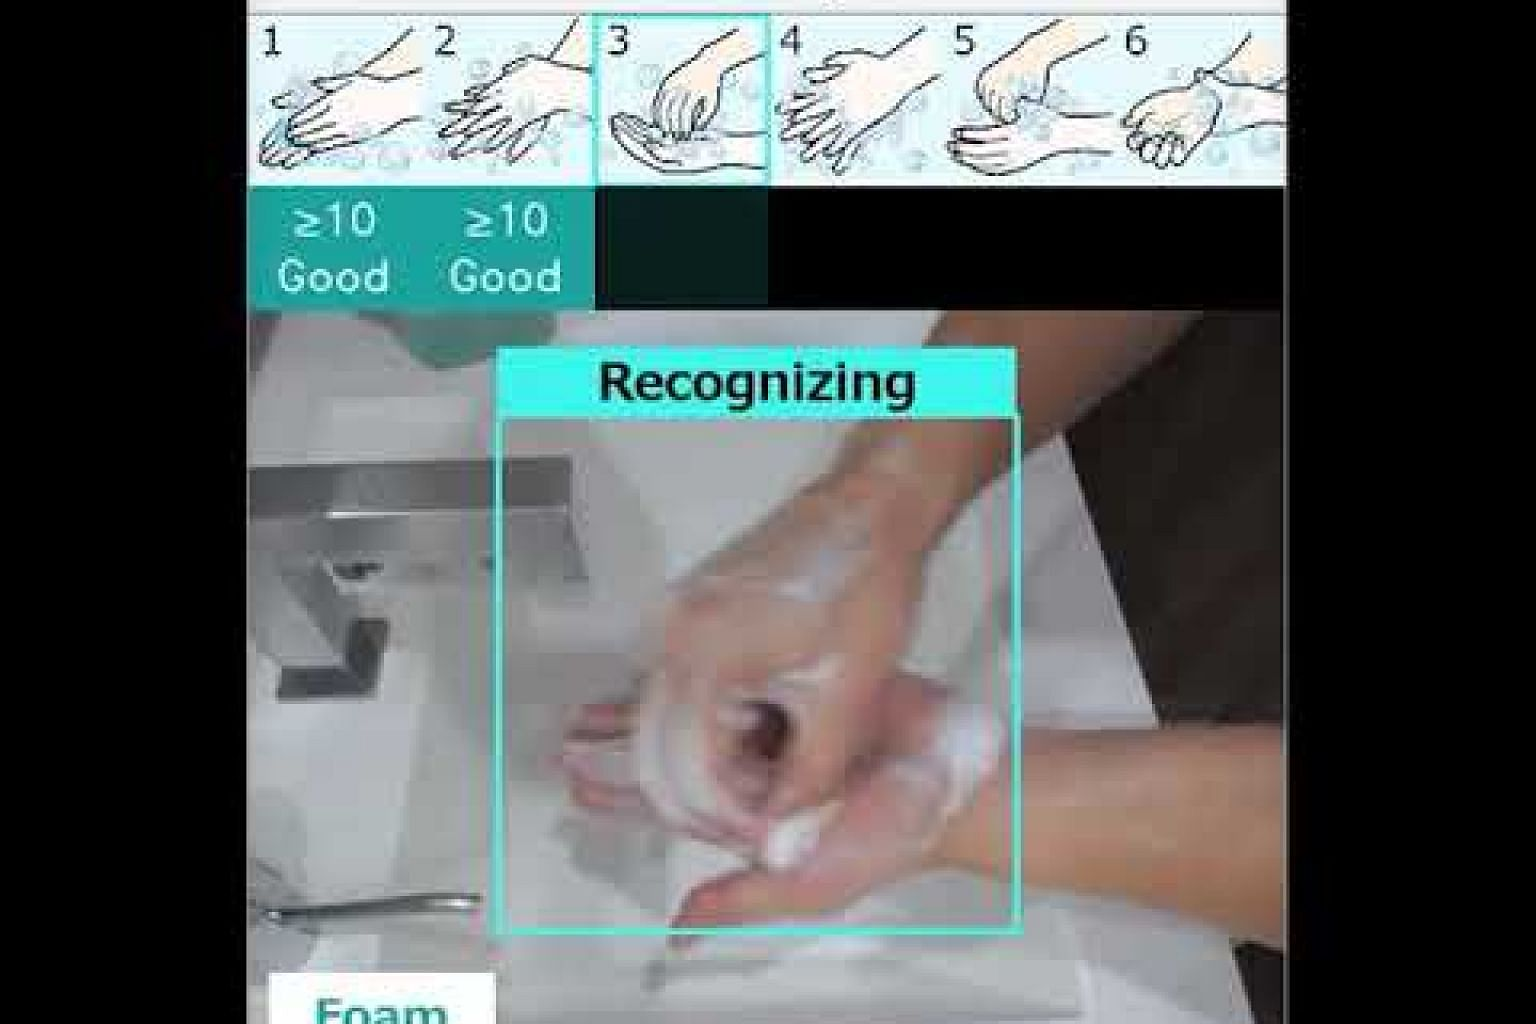 Fujitsu Develops AI-Video Recognition Technology to Promote Hand Washing Etiquette in the Workplace